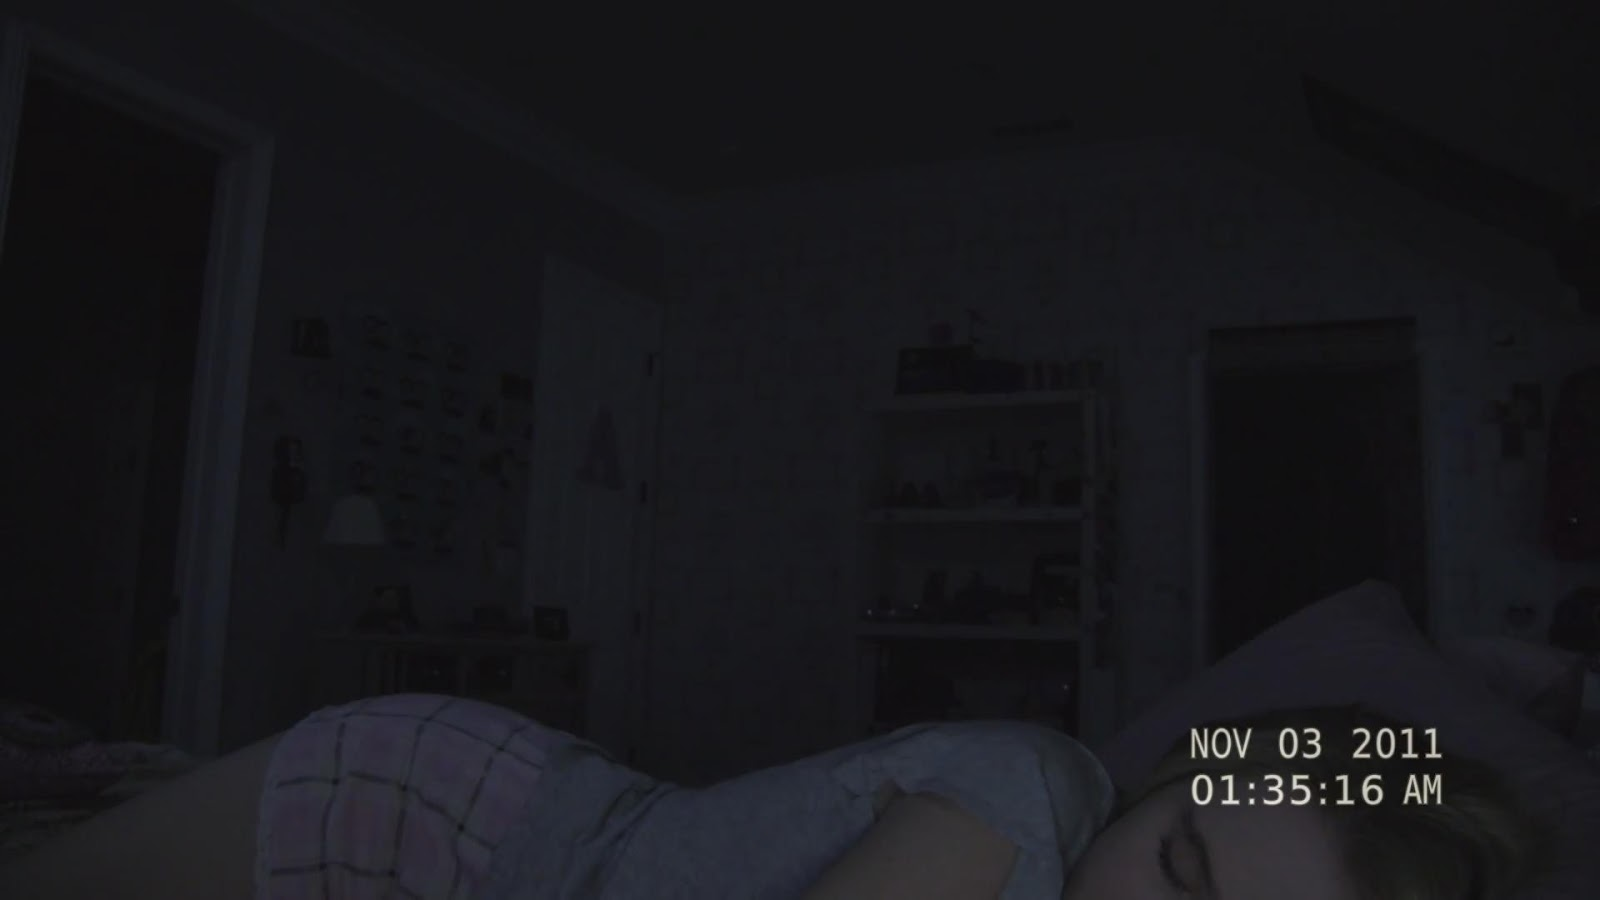 Paranormal+Activity+4+hd+wallpapers+%289%29 Paranormal Activity 4 Fragmanı İzle